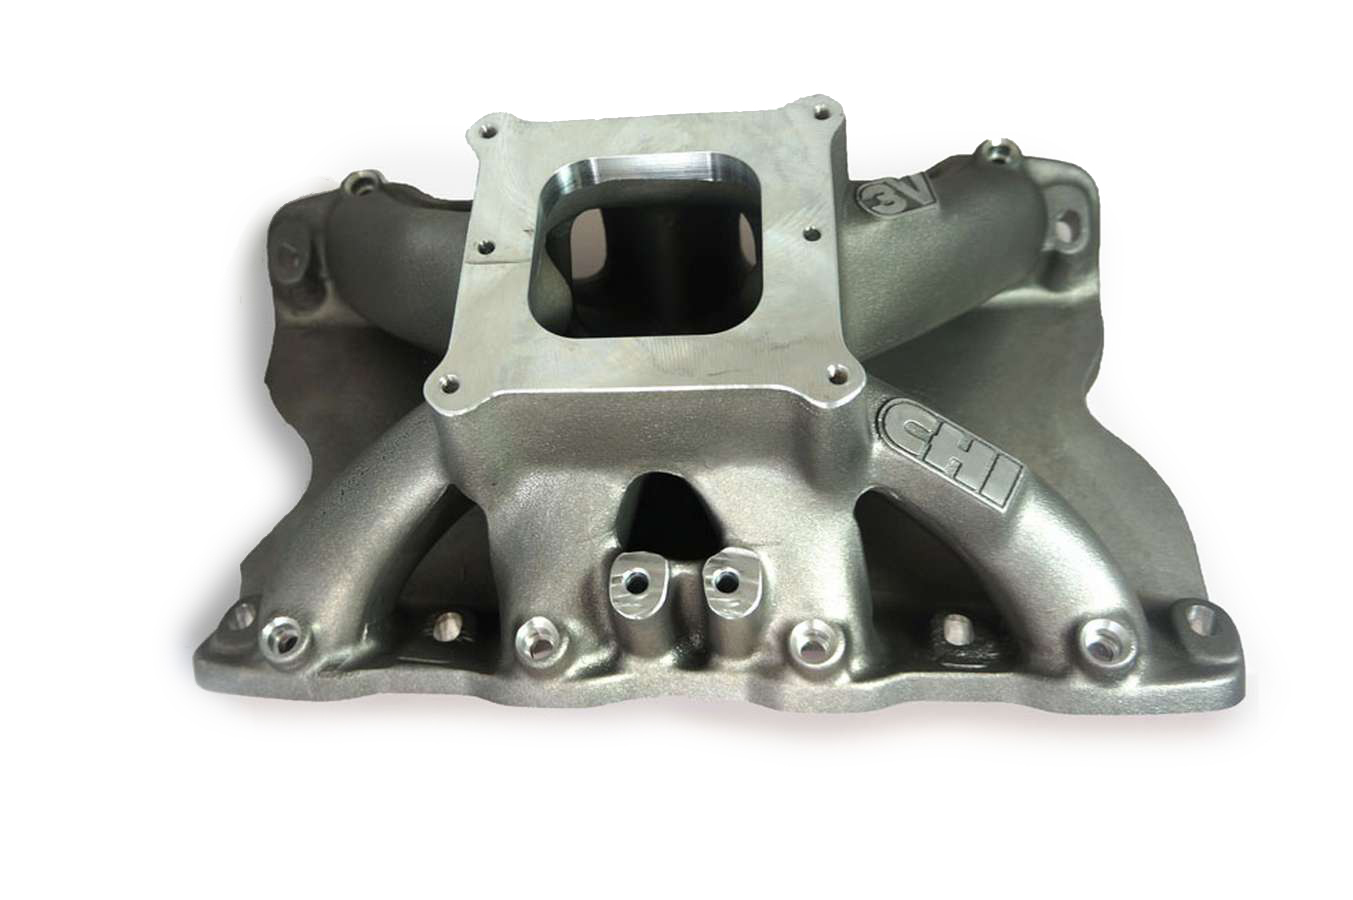 Cylinder Head Innovations INT3V225H9.5W Intake Manifold, 3V, Square Bore, 9.500 in Deck Height, Aluminum, Natural, Small Block Ford, Each